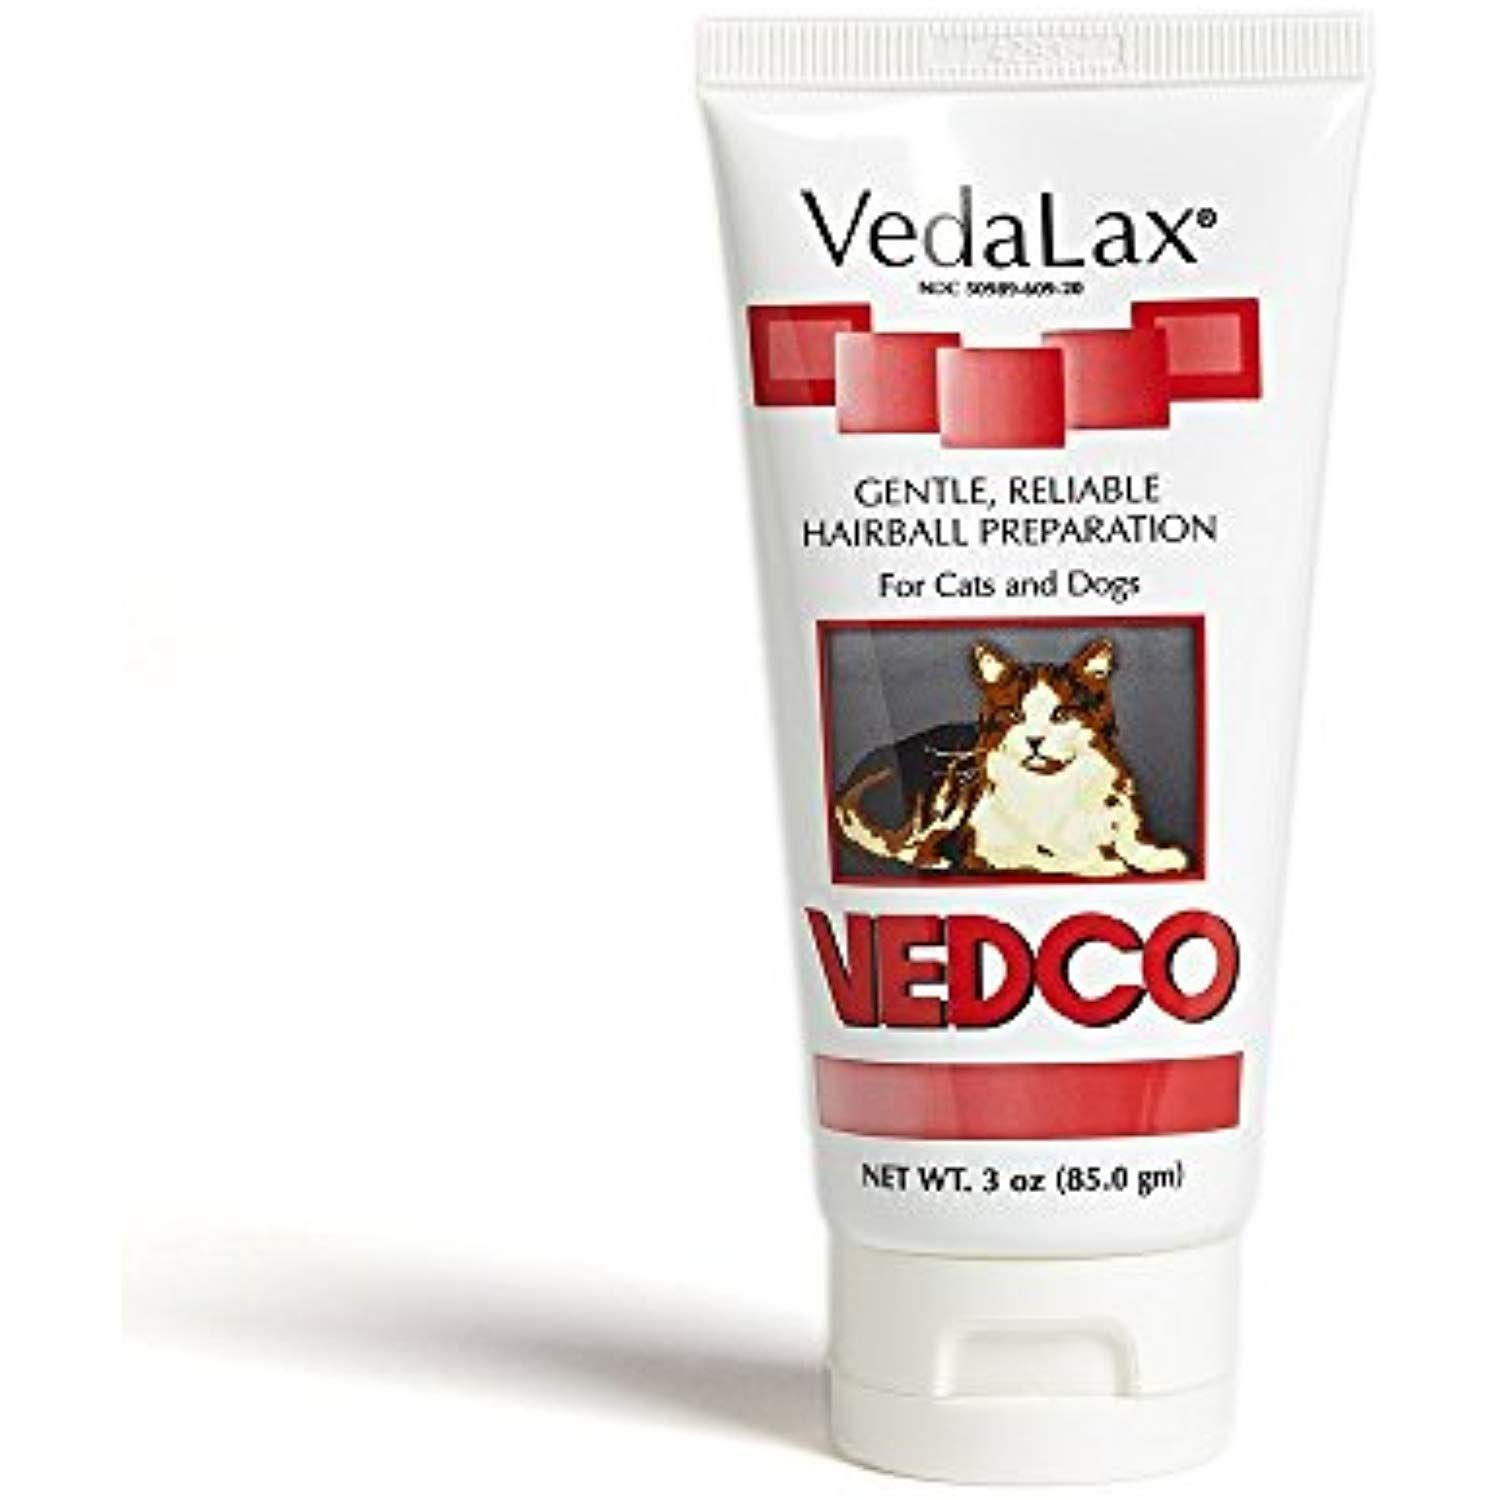 Vedalax Hairball Preparation For Cats And Dogs 3 Oz Regular Malt Flavor Click Image For More Details This Is An Affili Hairball Dog Cat Cats Illustration